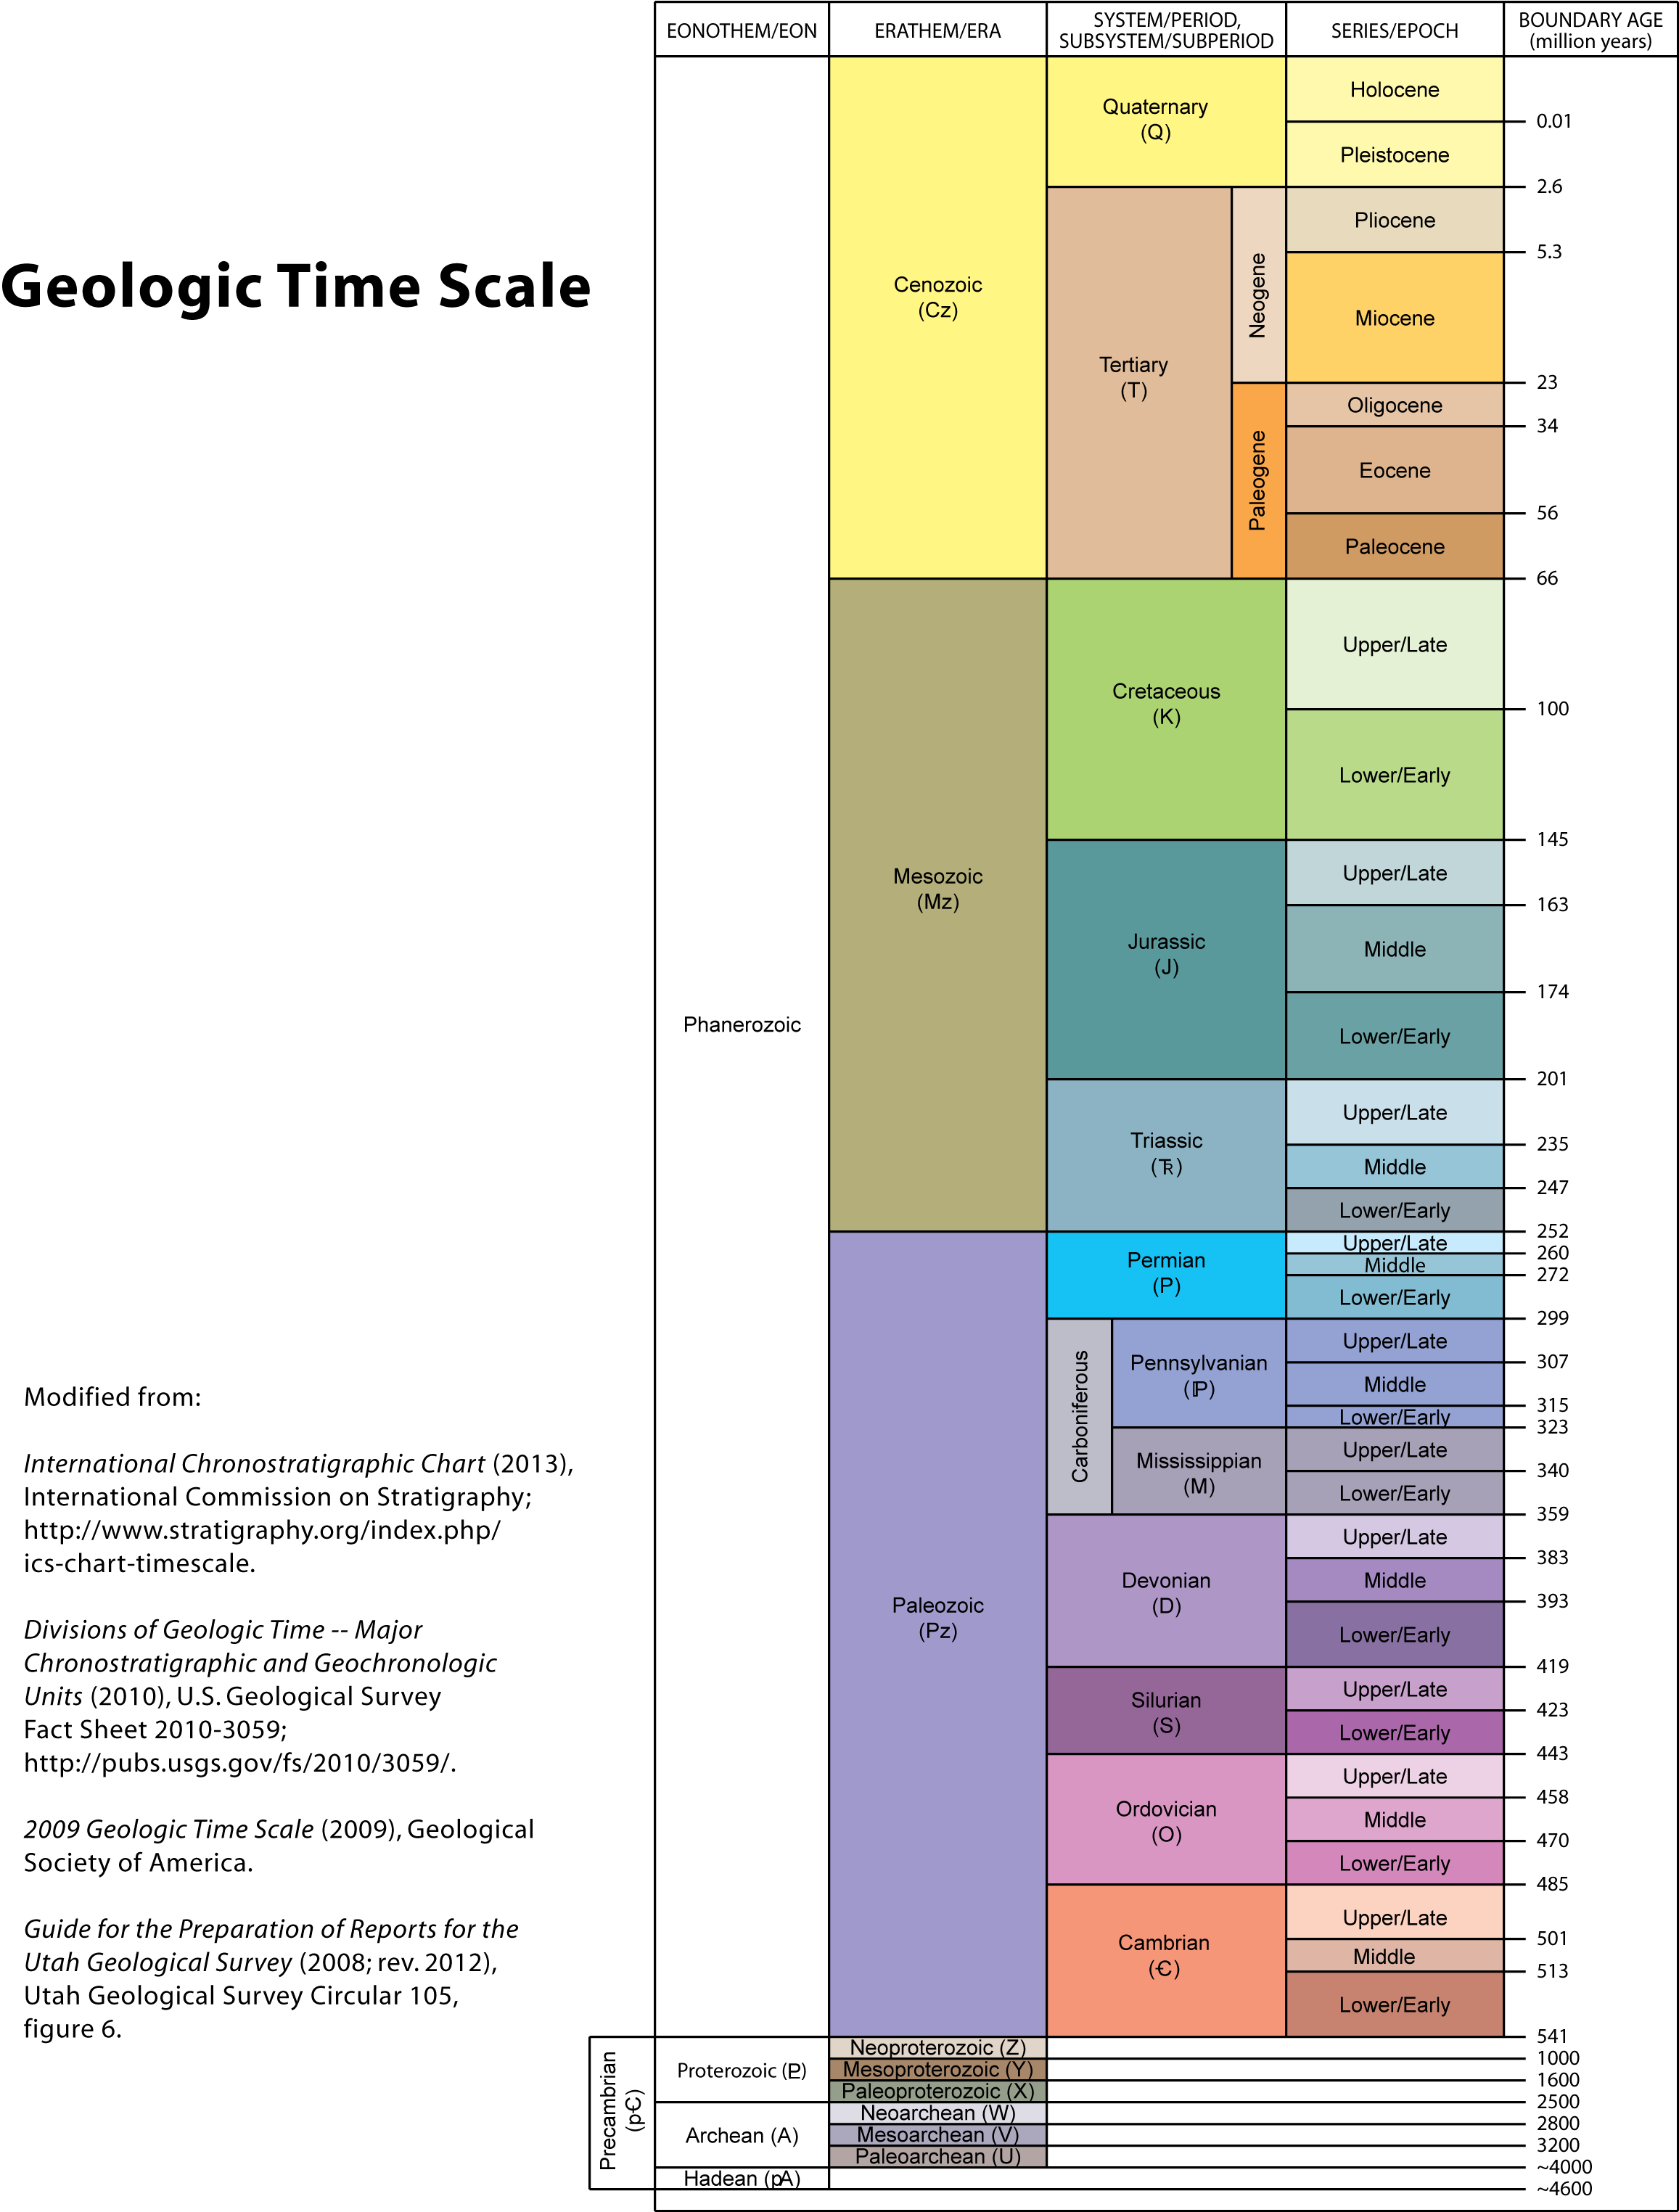 relative dating geologic time scale Relative dating (steno's laws): long before geologists tried to quantify the age of the earth they developed techniques to determine which geologic events preceded another, what are termed.